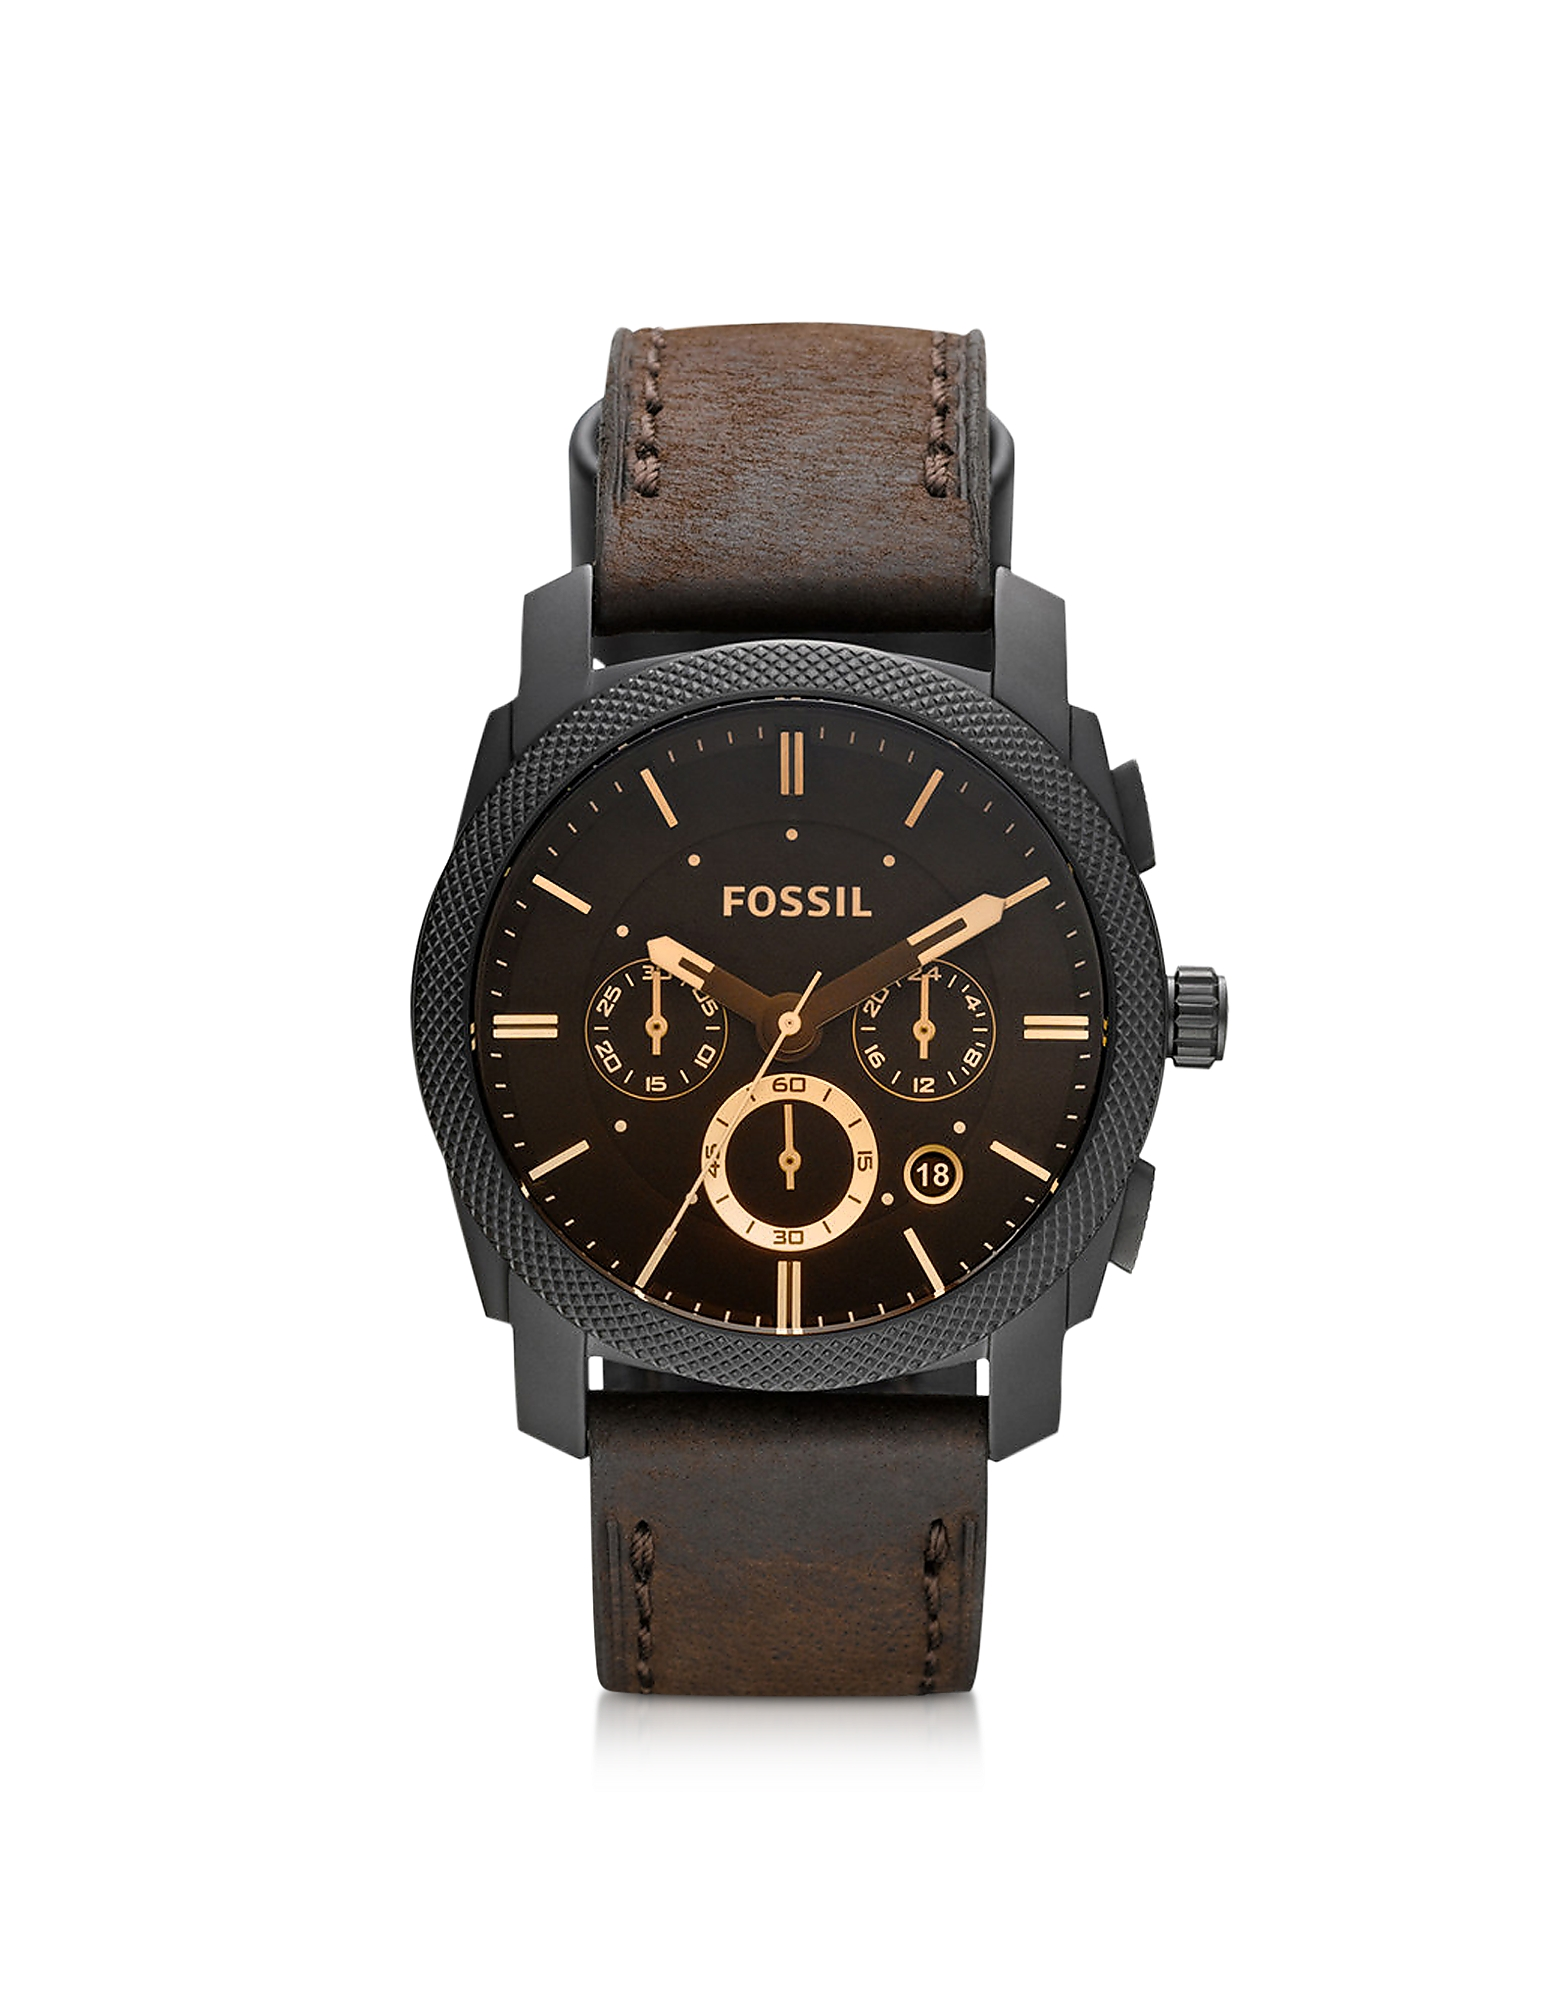 Fossil Men's Watches, Machine Mid-Size Chronograph Brown Leather Men's Watch